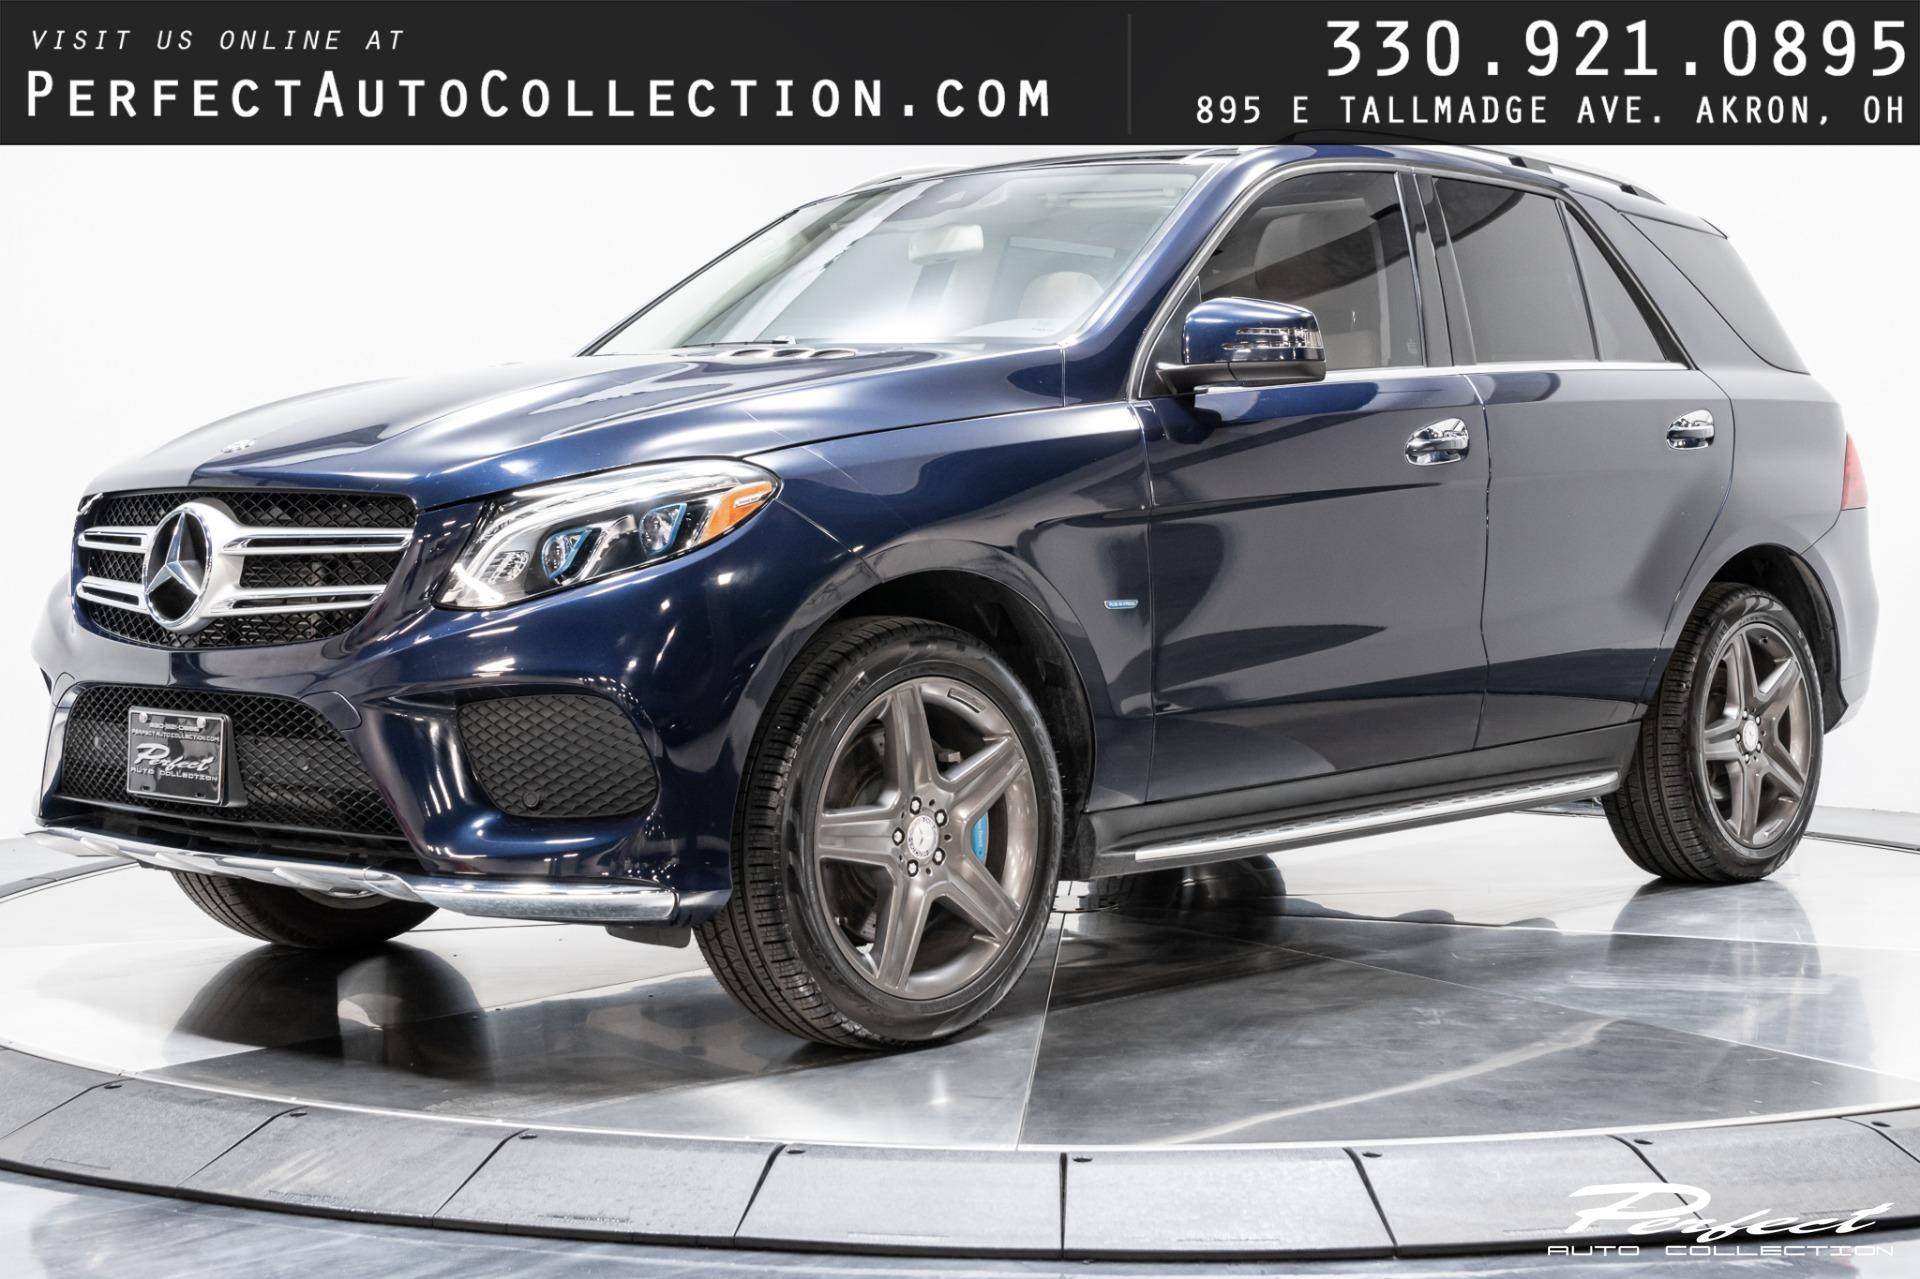 Used 2017 Mercedes-Benz GLE GLE 550e 4MATIC for sale $36,793 at Perfect Auto Collection in Akron OH 44310 1